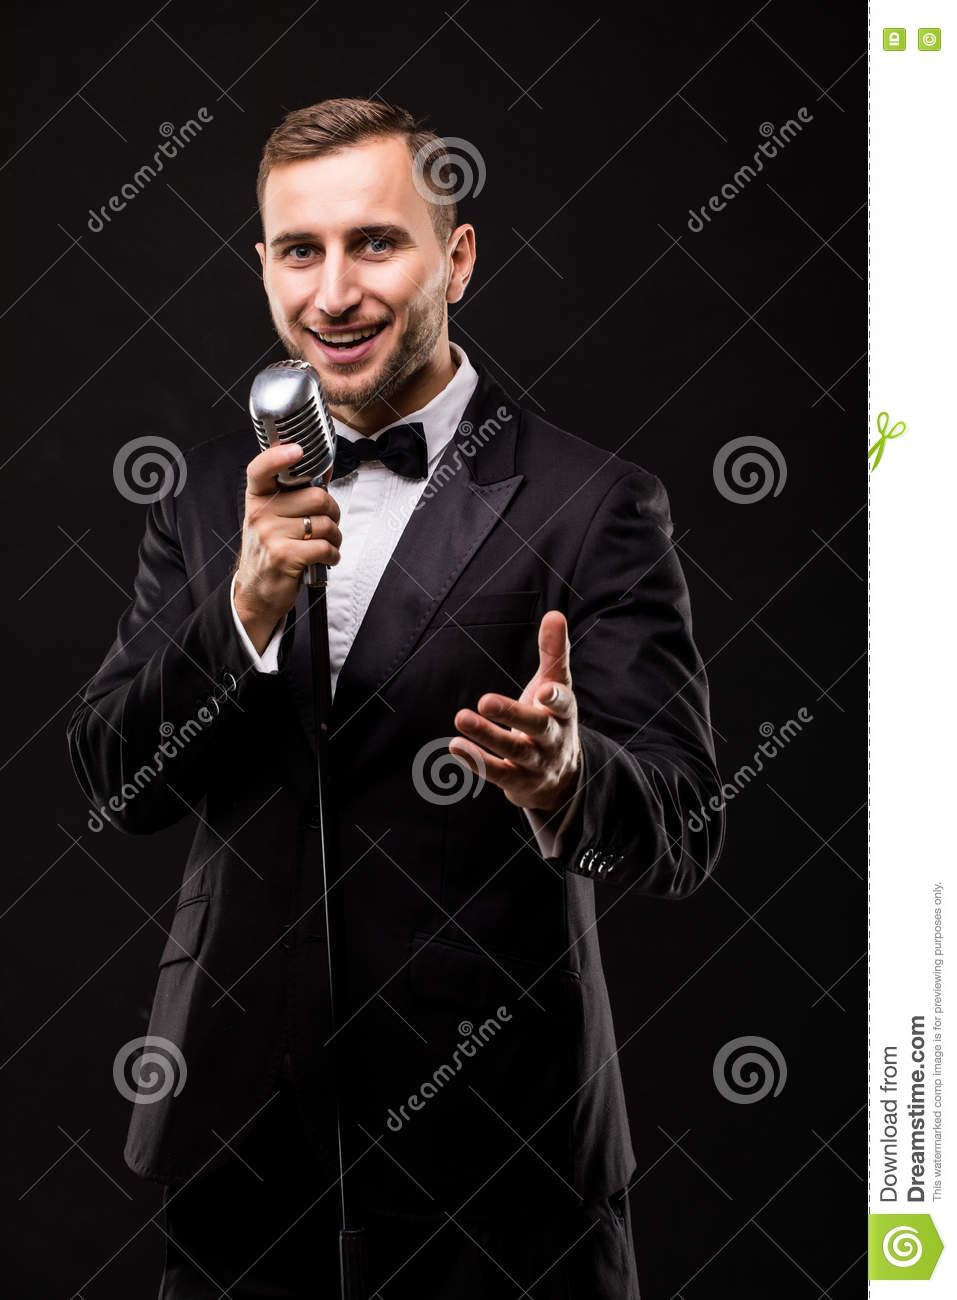 Young man in suit singing over the microphone with energy